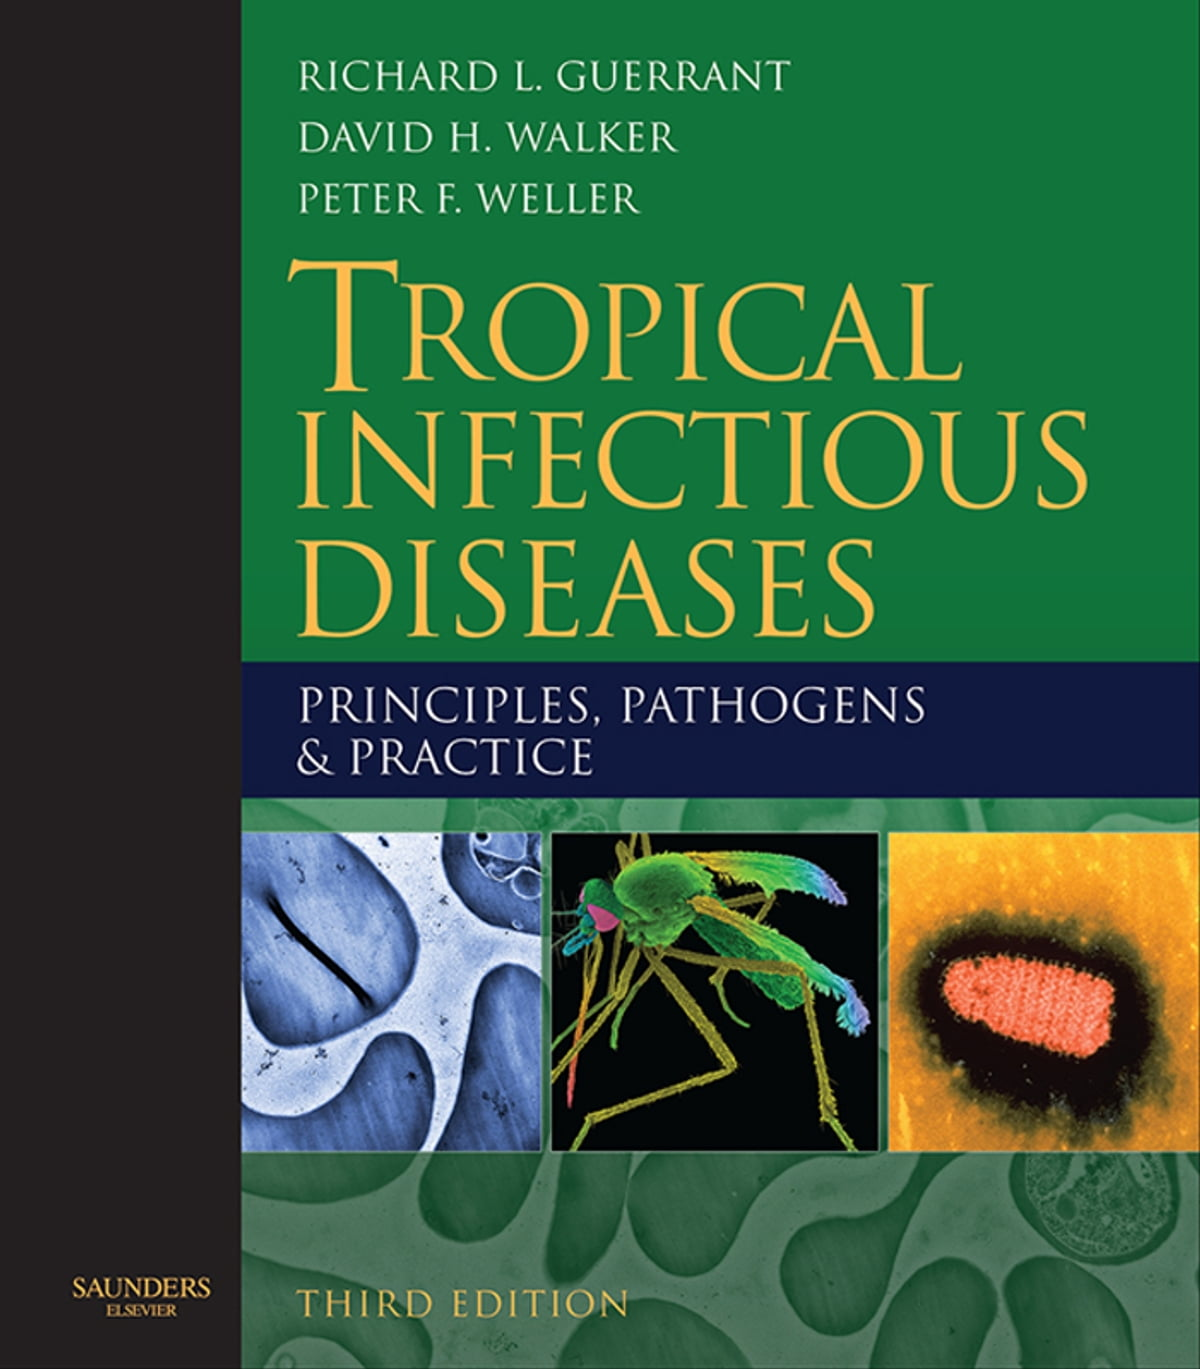 Infectious Diseases Book